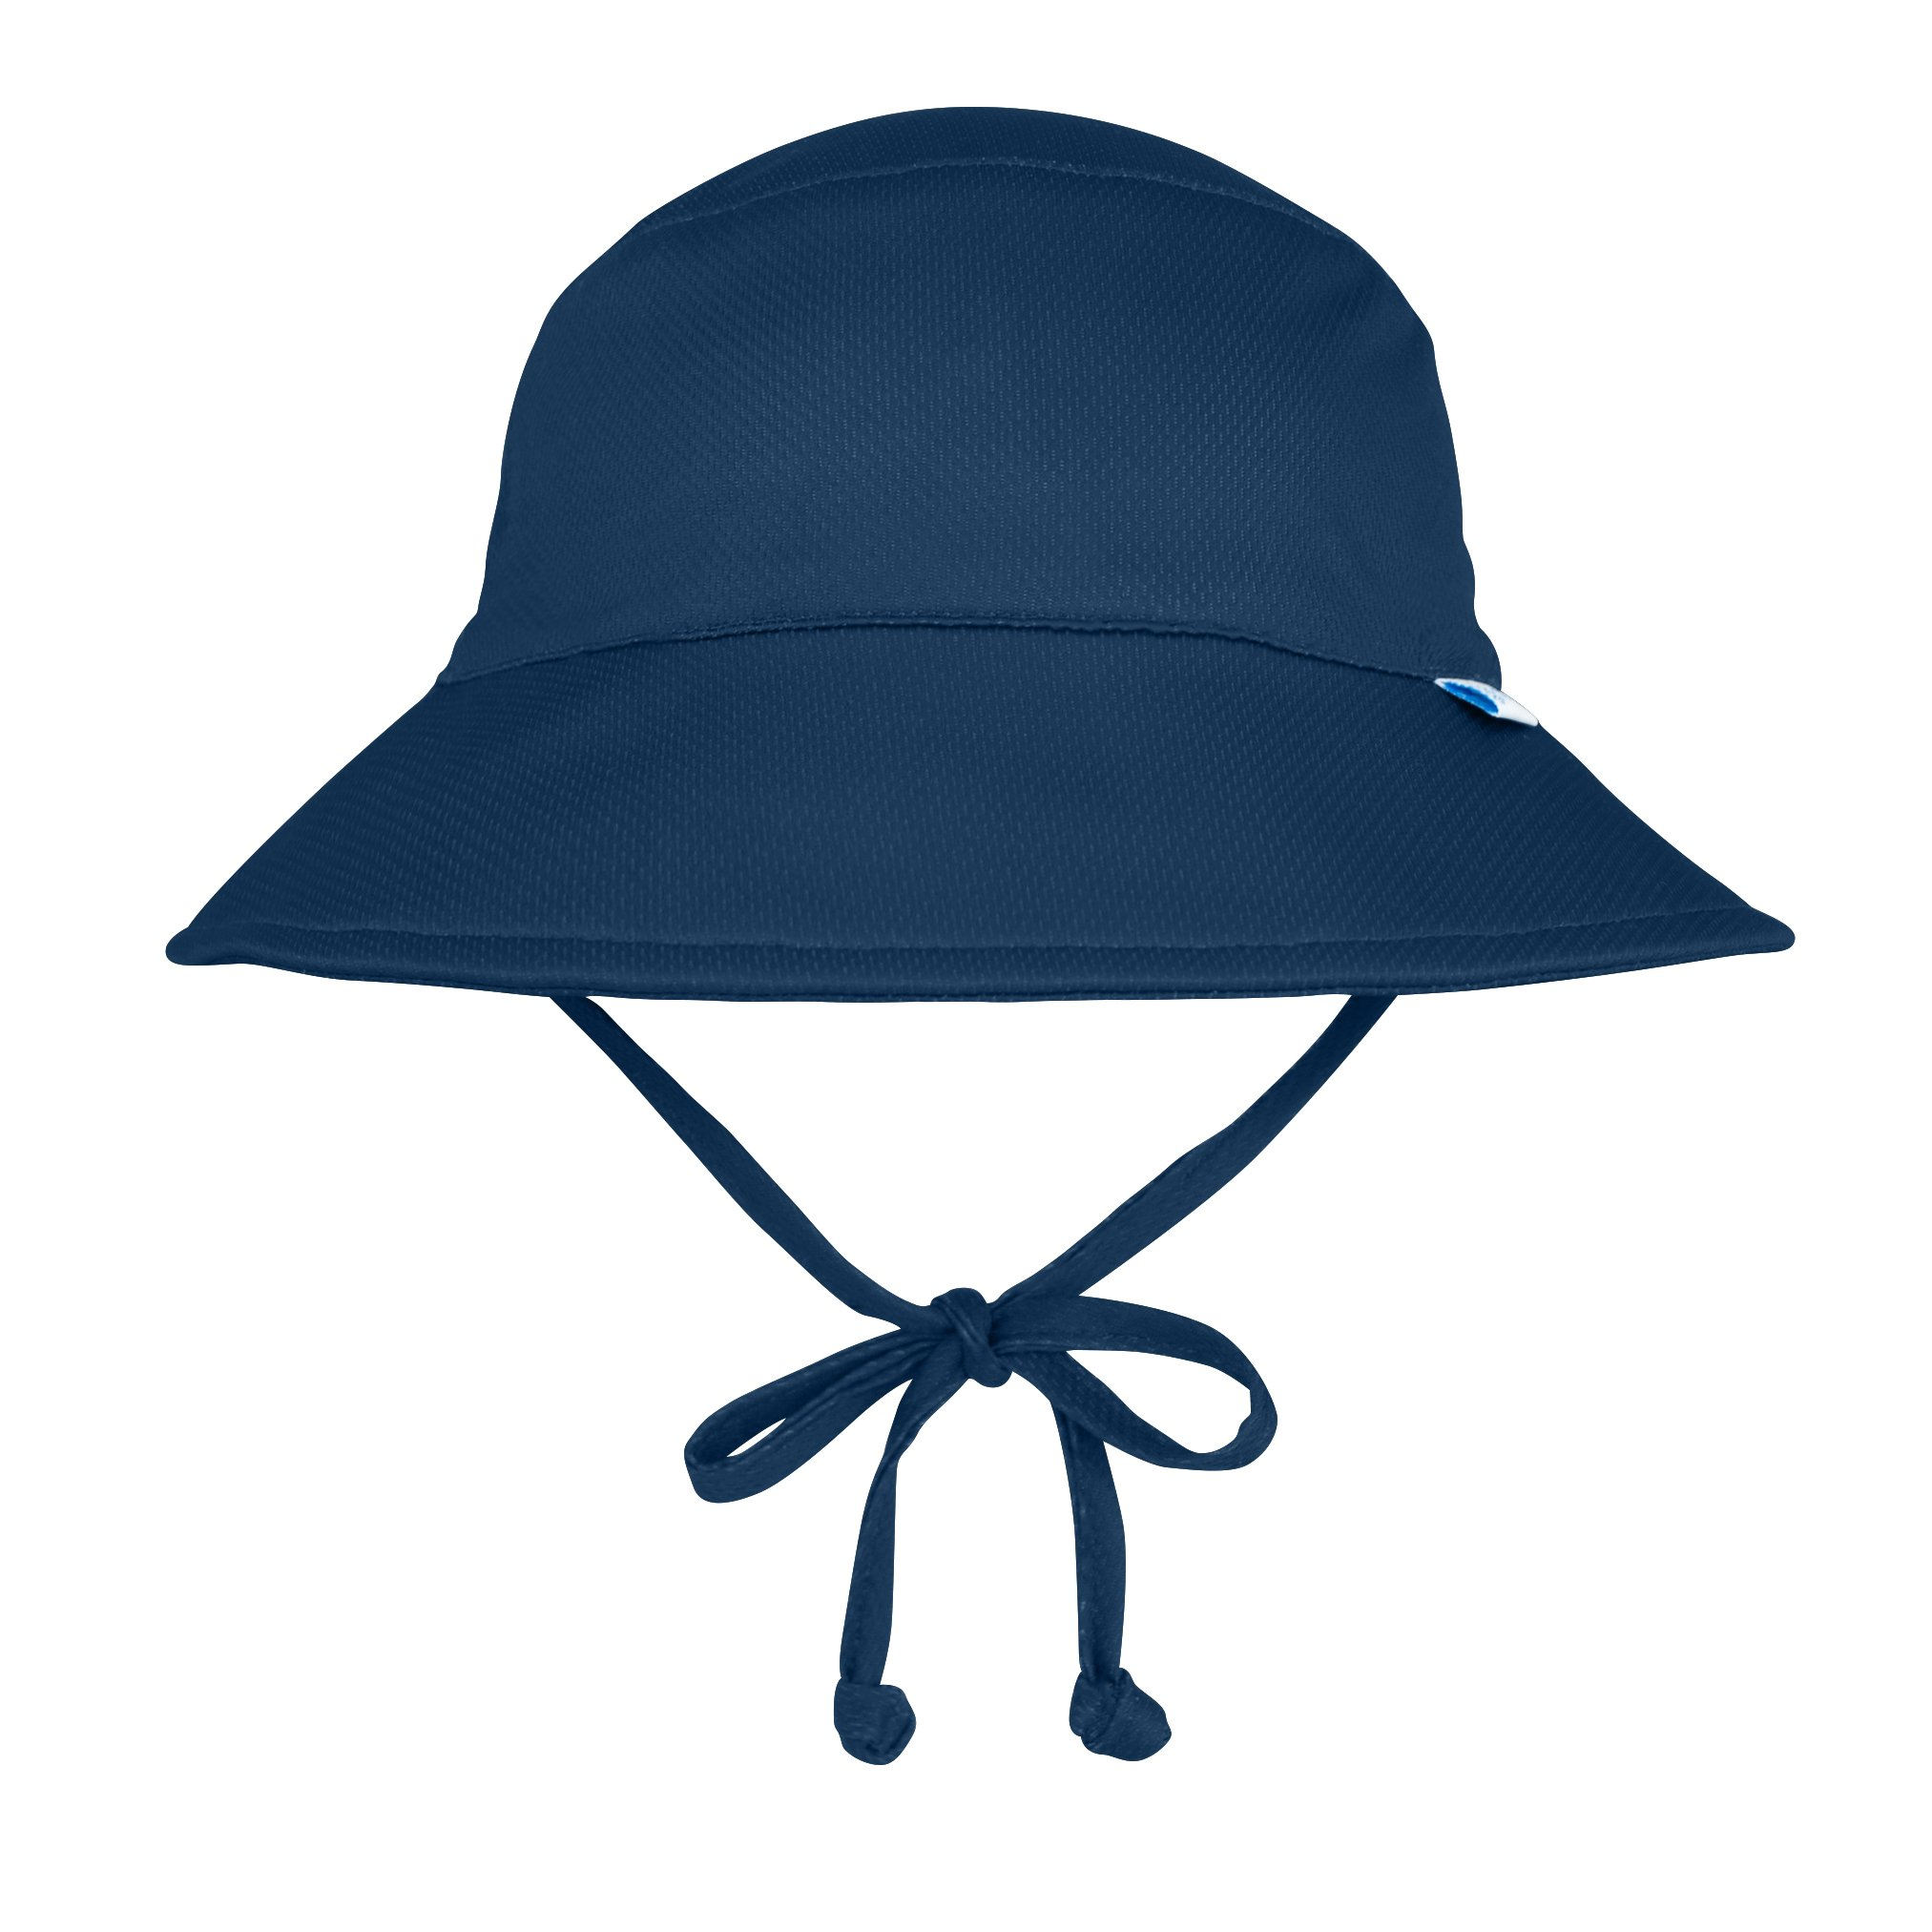 i play. Kids' Toddler Boys Breatheasy Bucket Sun Protection Hat, Navy, 2T/4T by i play.